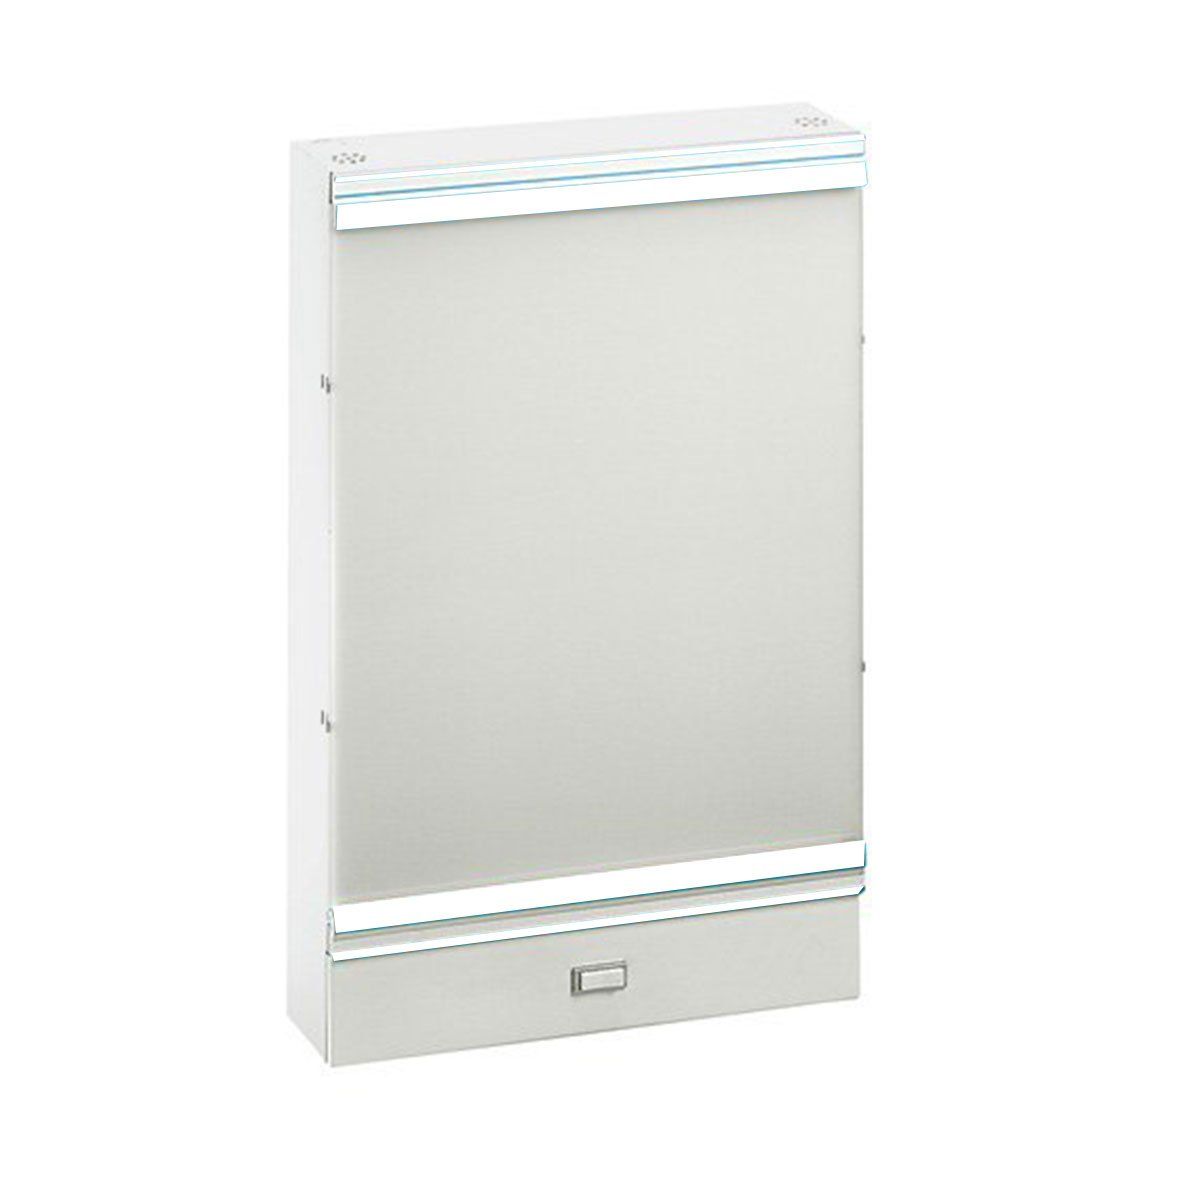 PDC Healthcare 501D Illuminator, 1 Section, 14'' x 17'' Viewing Area, Wall Mount, 14'' x 21'' x 3-3/8'', White